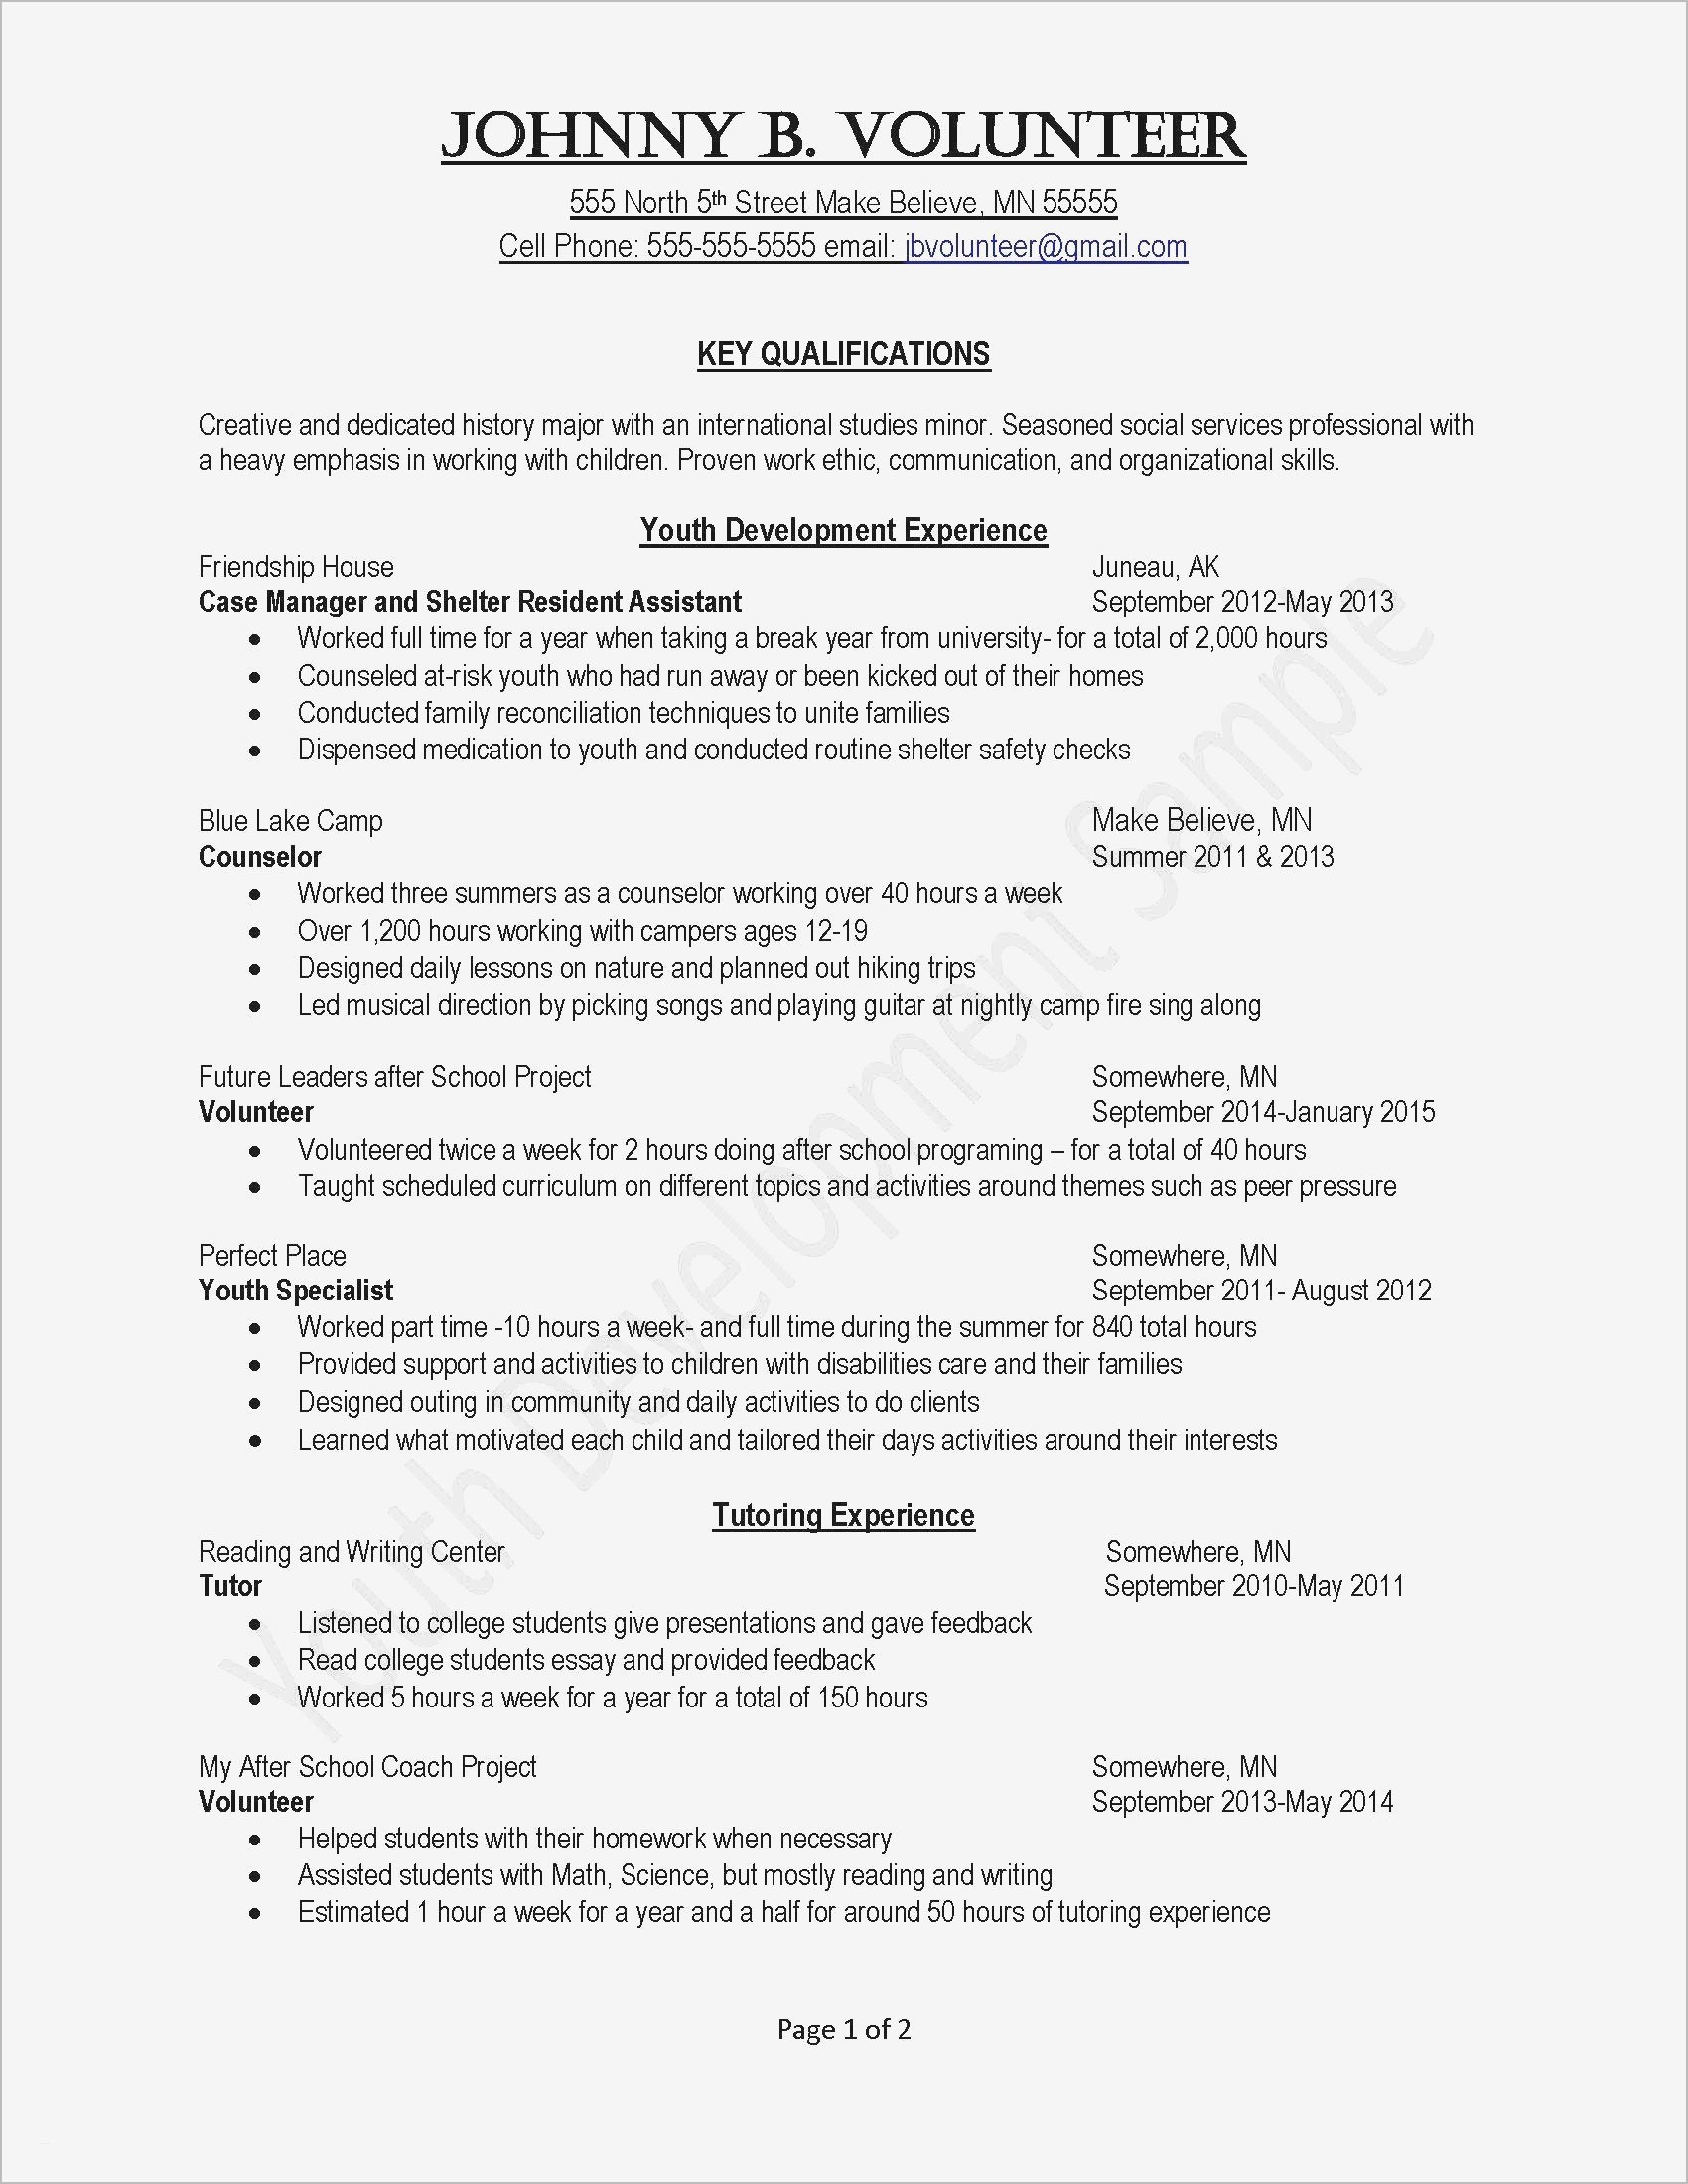 Example Cover Letter for Resume - Cover Letter New Resume Cover Letters Examples New Job Fer Letter